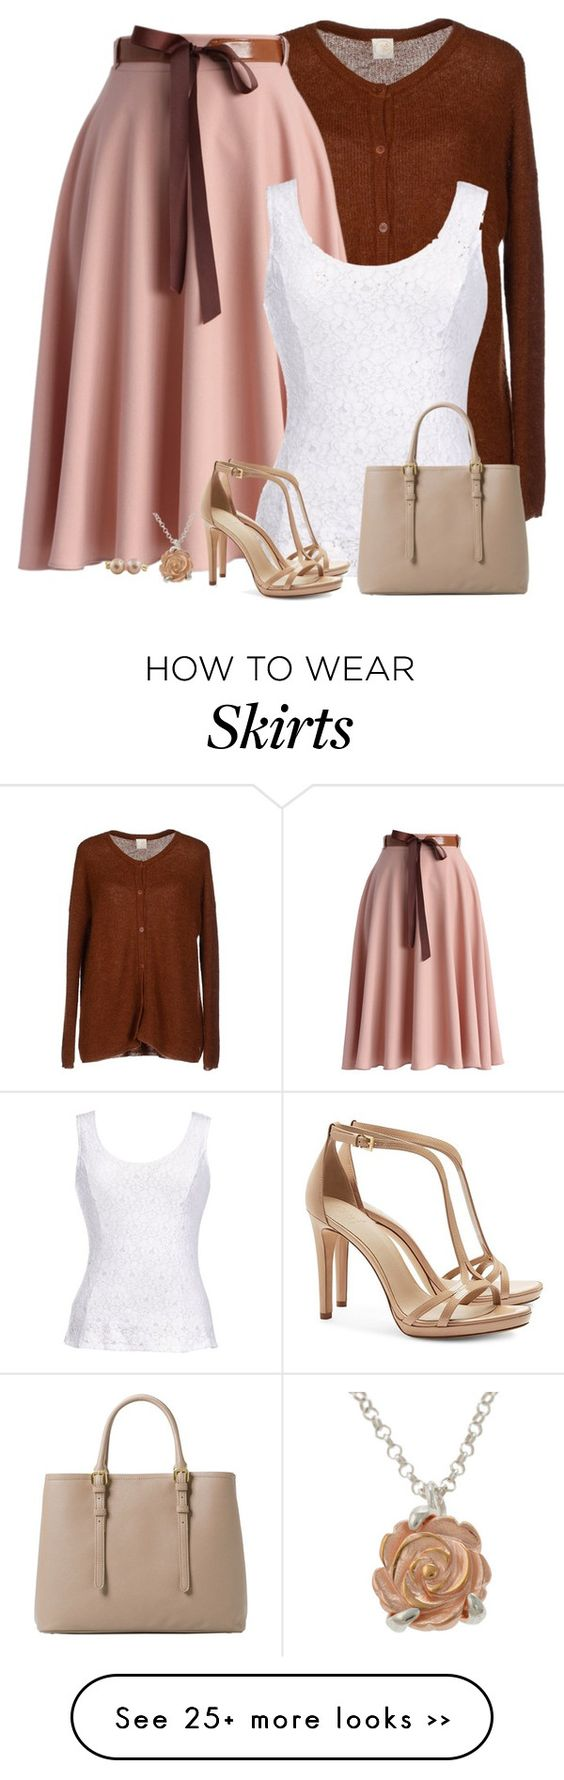 """""""belted skirt"""" by divacrafts on Polyvore"""